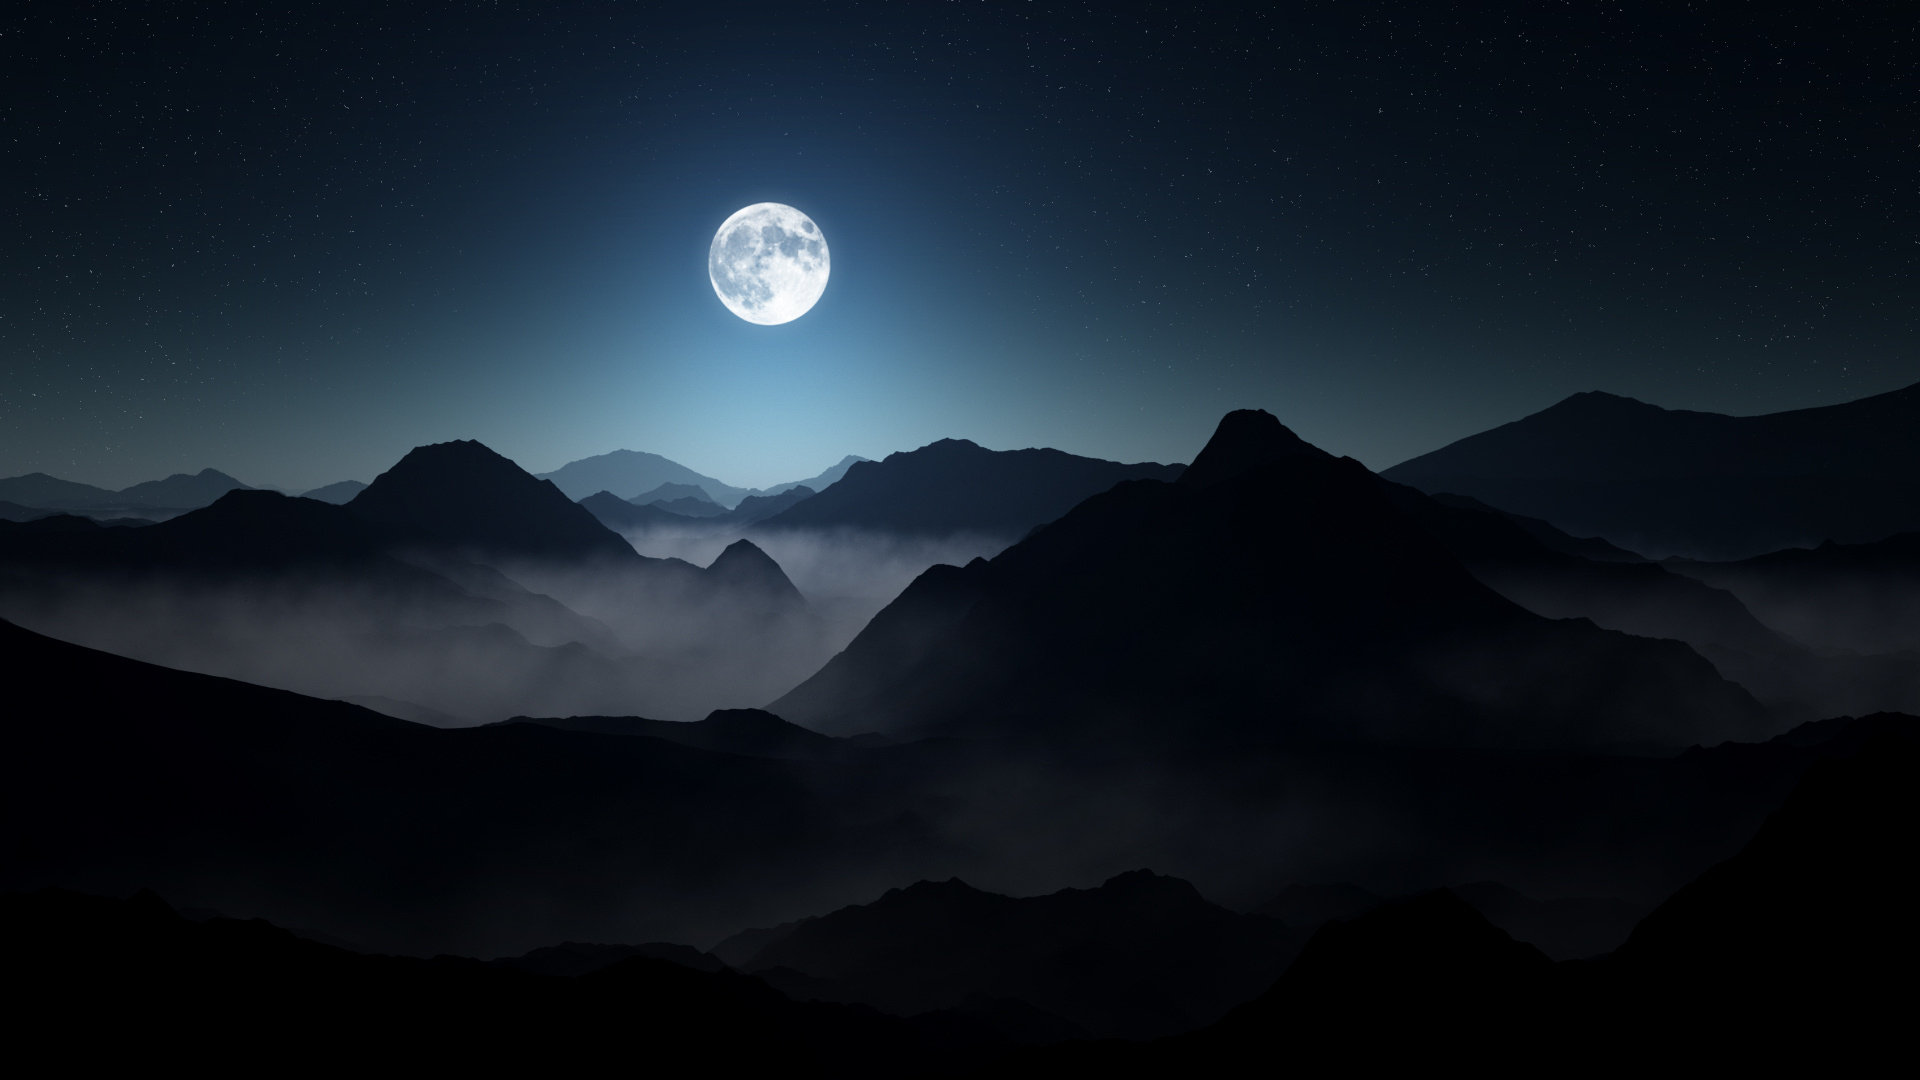 full moon over dark mountains wallpaper 61961